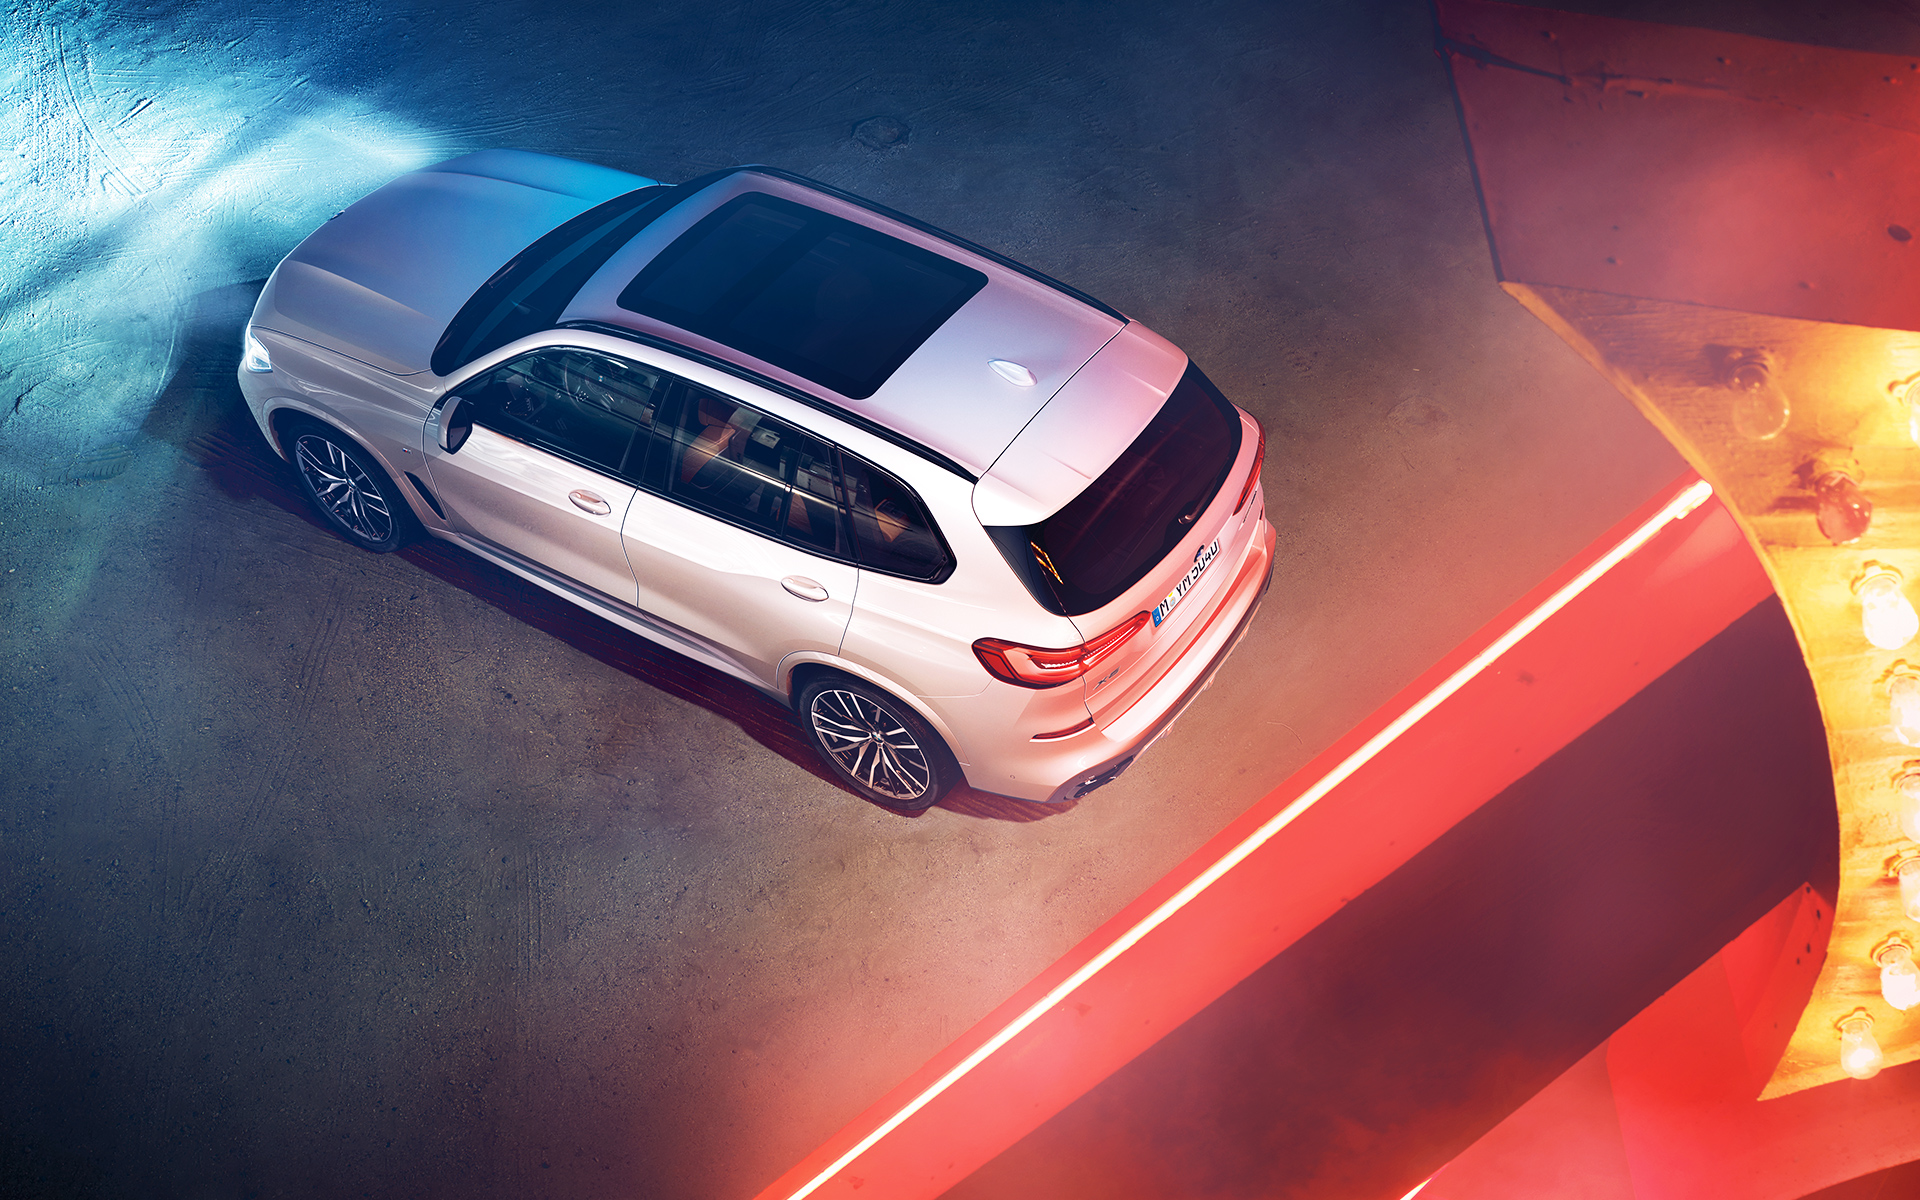 Night-time shot of the BMW X5 from above